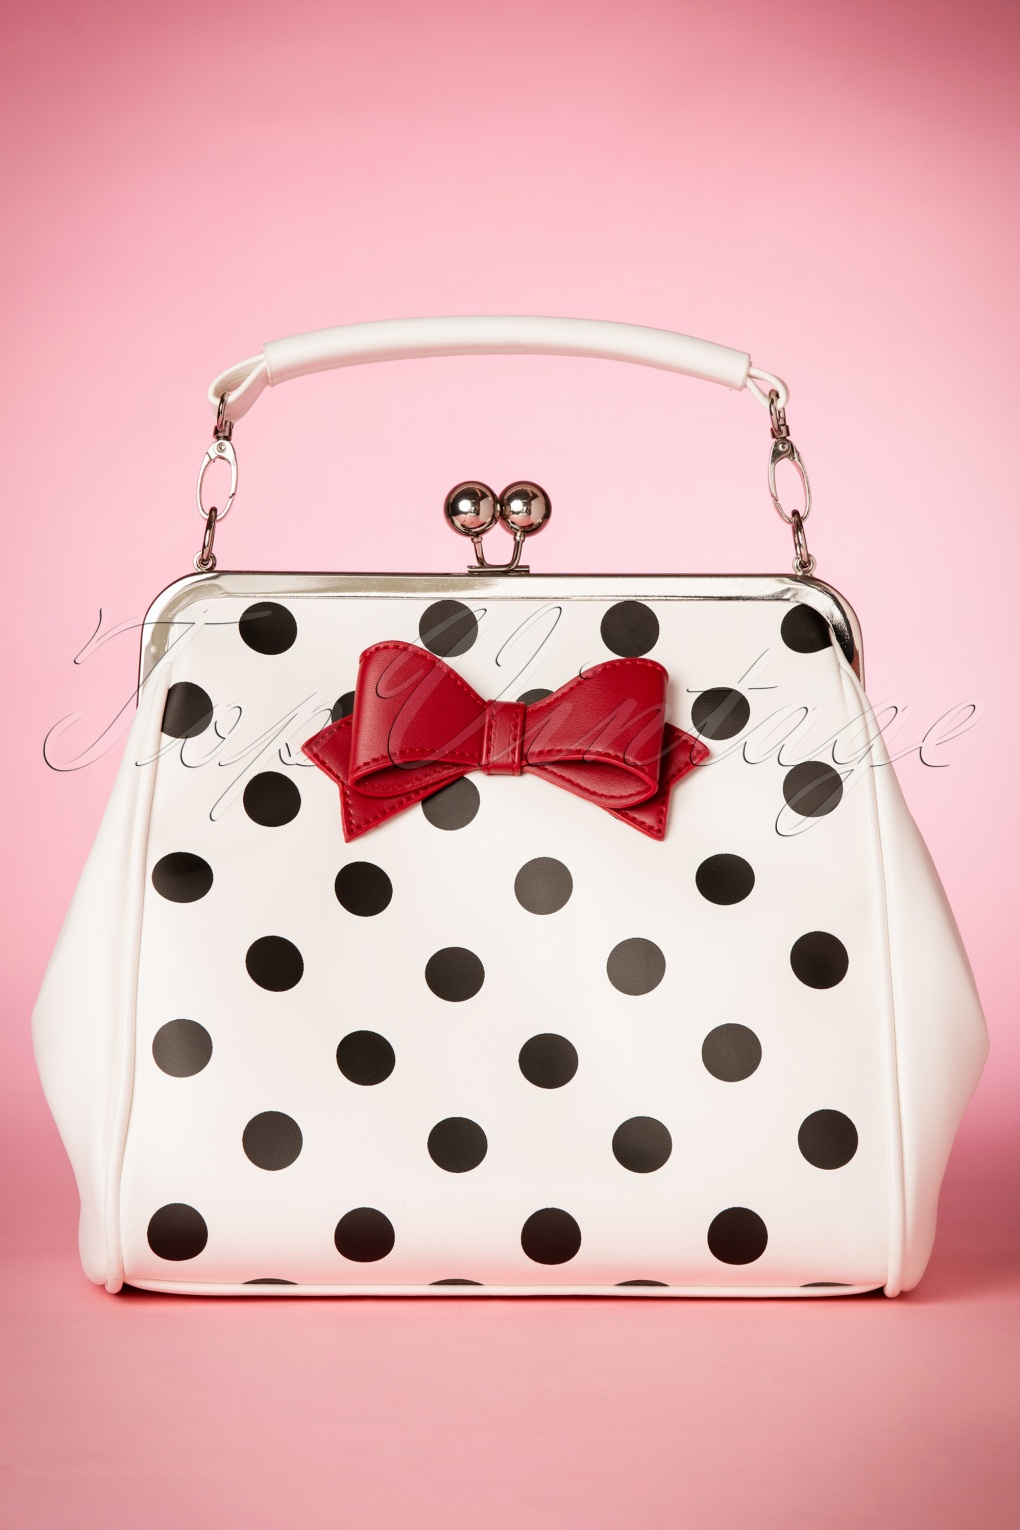 1950s Handbags, Purses, and Evening Bag Styles 50s Mindy Polkadot Handbag in White £54.87 AT vintagedancer.com